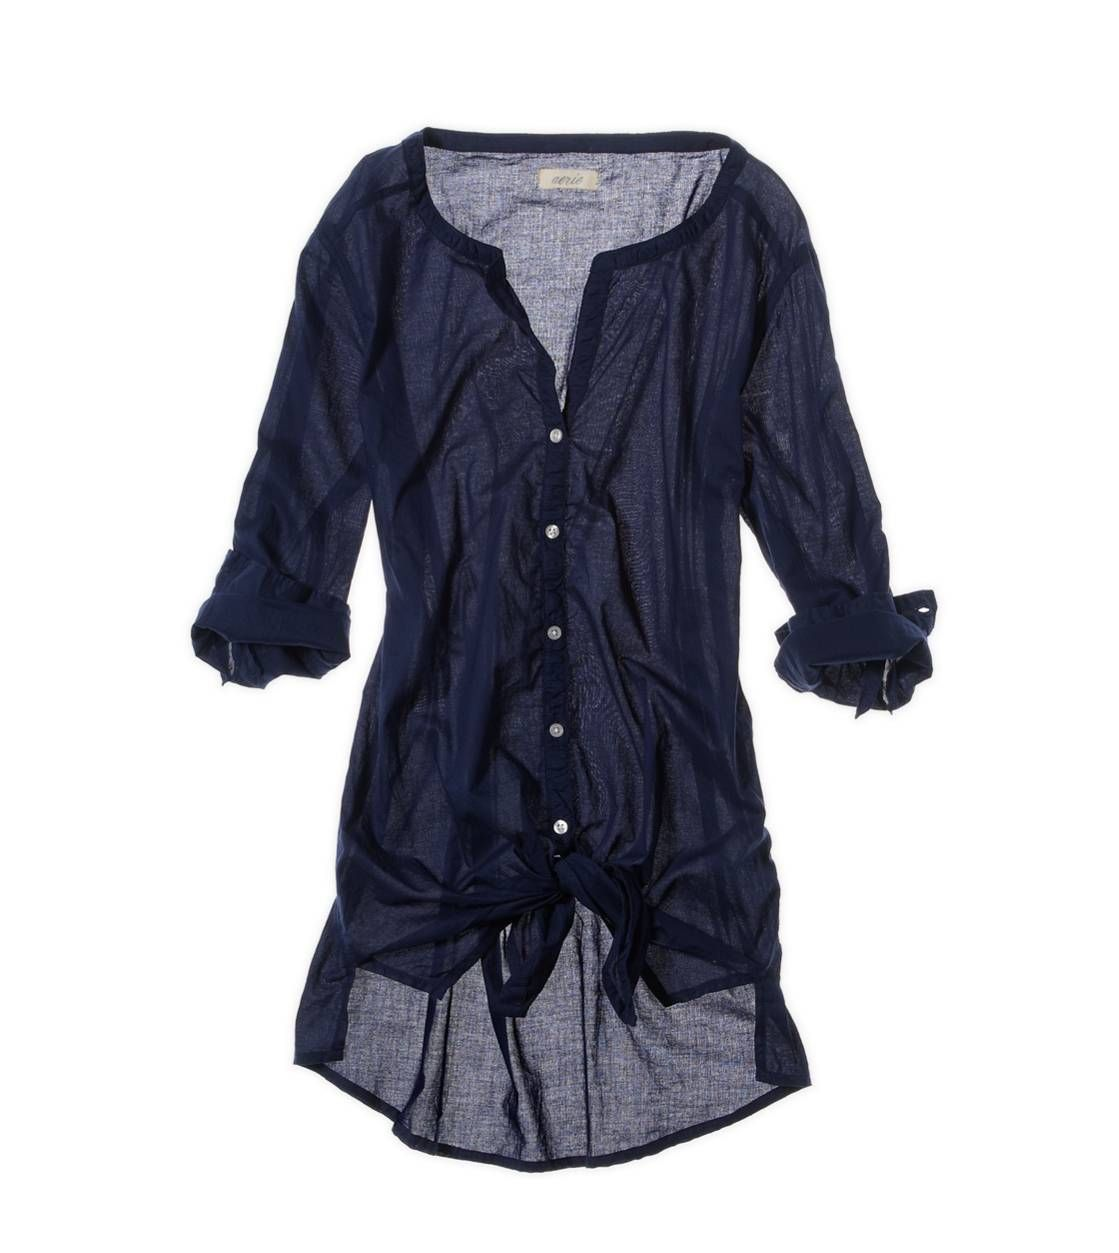 f14e3a6dff0b1 Aerie Buttoned swimsuit Cover Up. Love this!   Summer! :) in 2019 ...